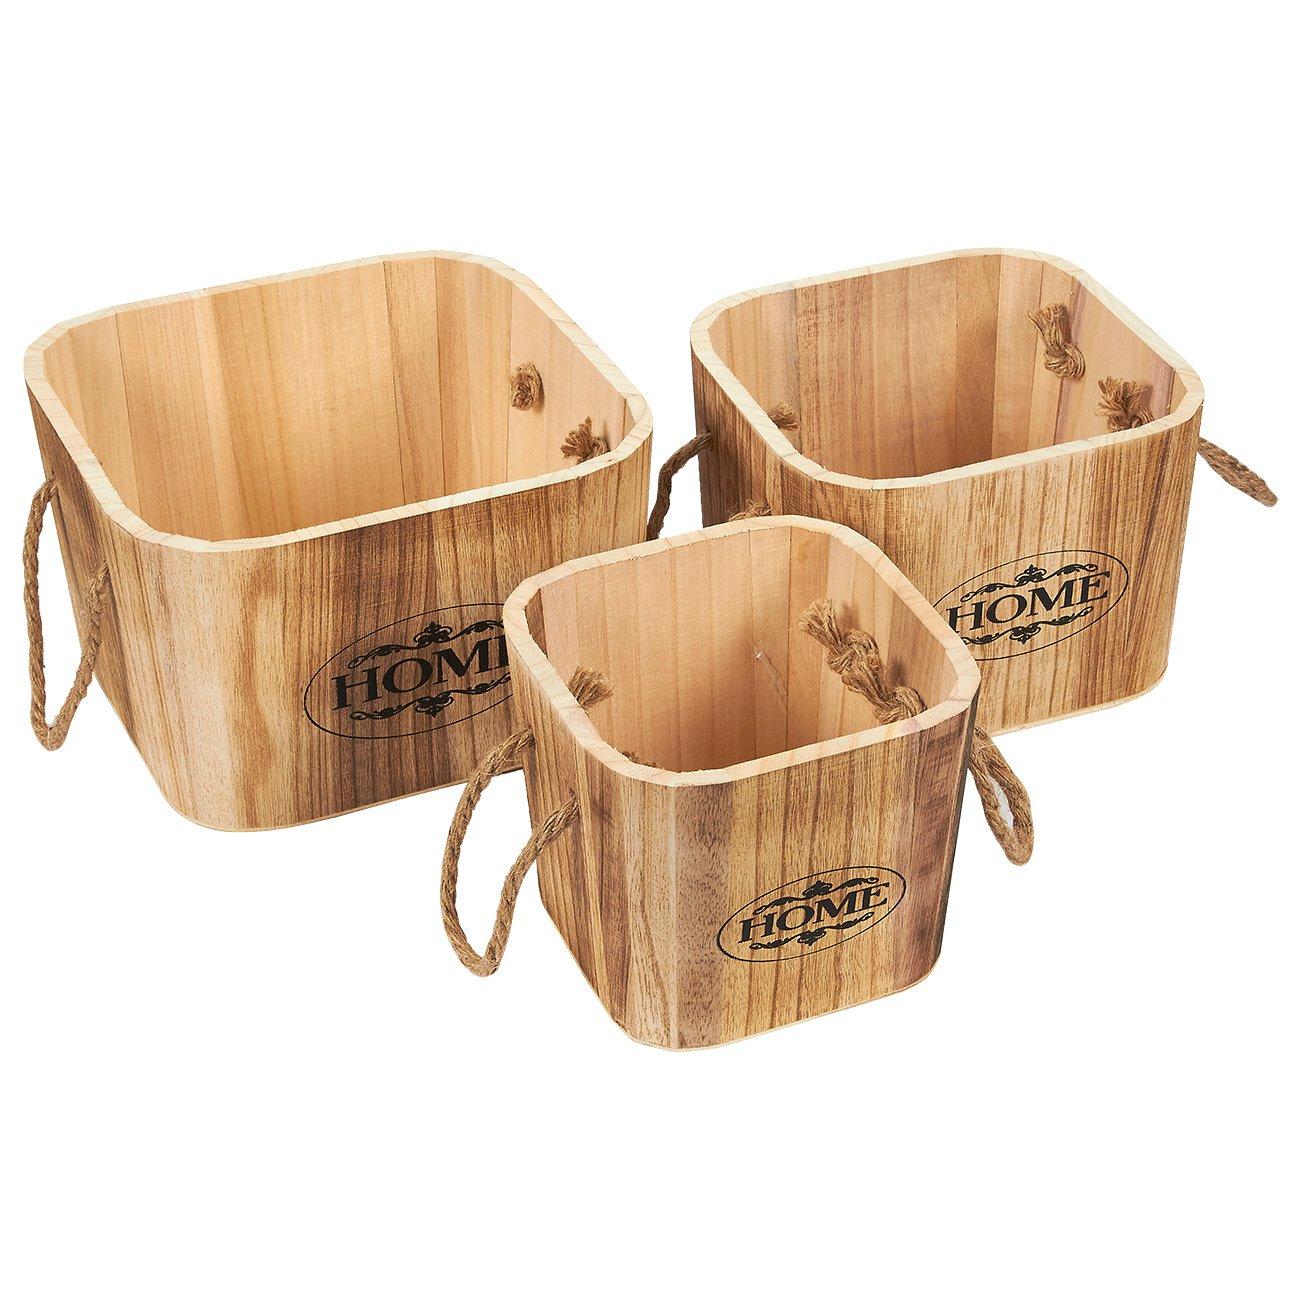 Juvale Wooden Basket – 3-Piece Rustic Wooden Buckets with Rope Handles, Wood Crates Storage Bins, Decorative Organizing Baskets for Shelves, Brown - Small, Medium, Large